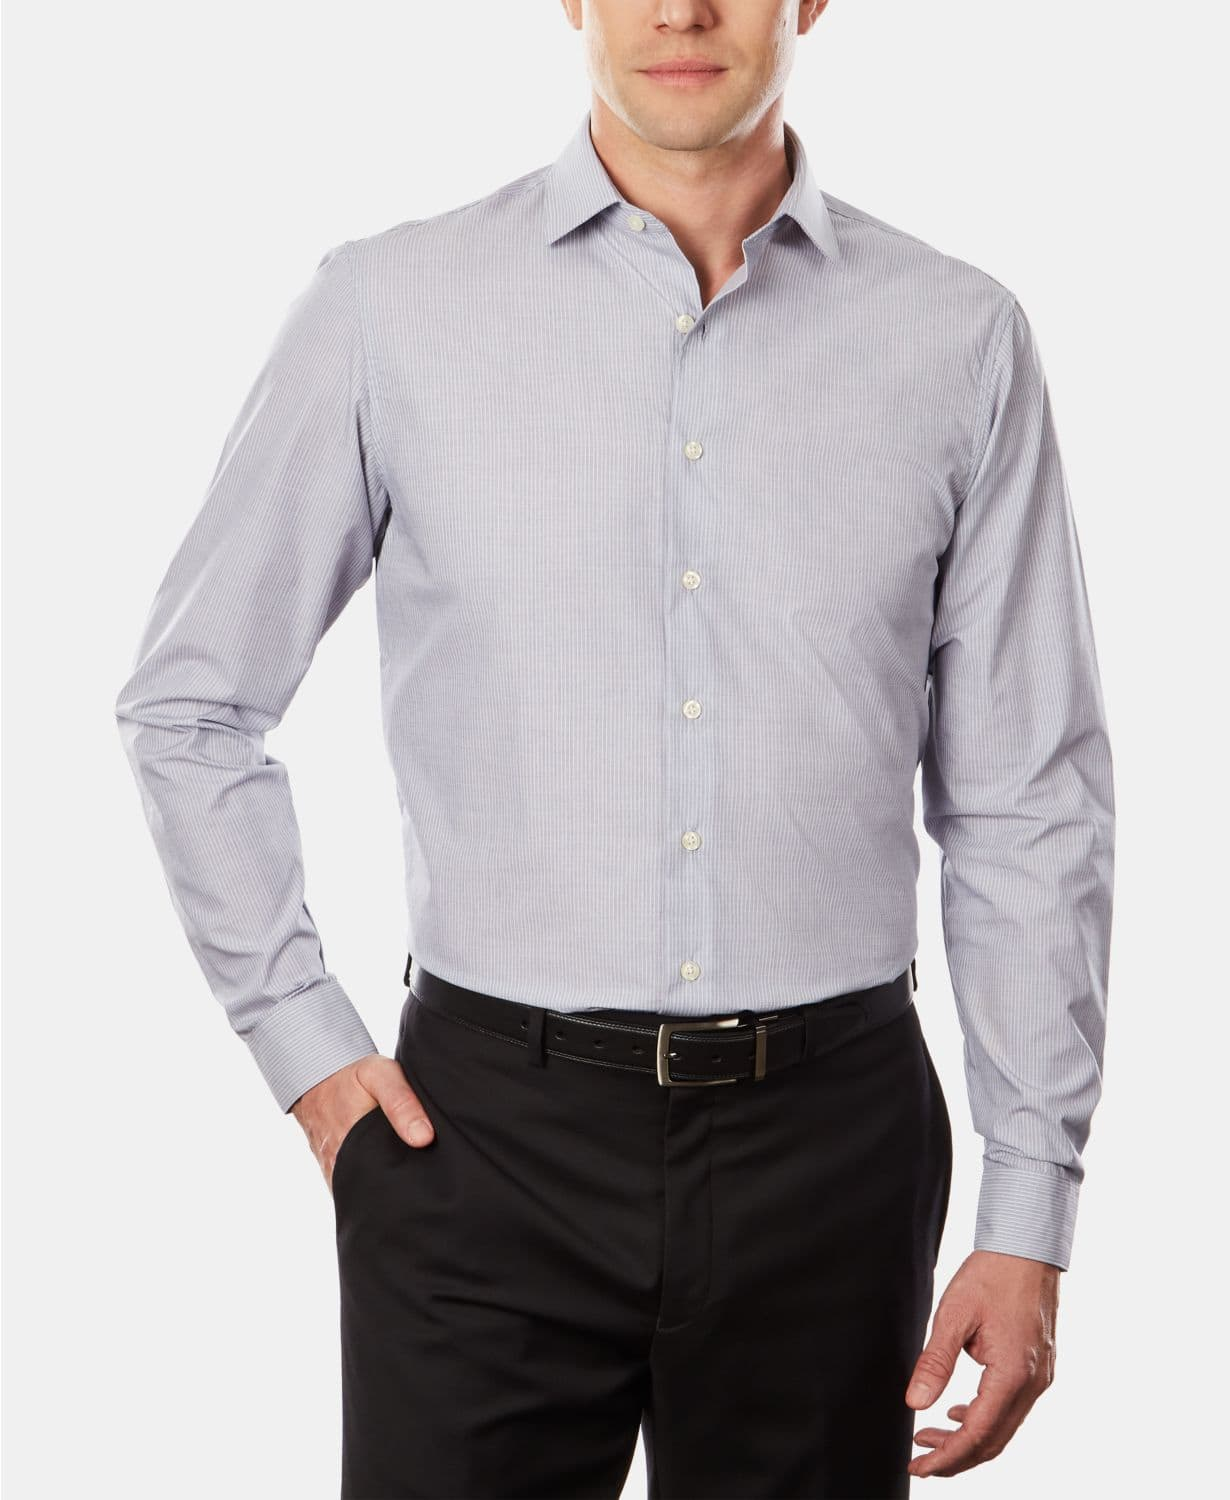 Mens Dress Shirts: Kenneth Cole Unlisted or Society of Threads (Various) $14.99 each & More + Free Shipping. Macys